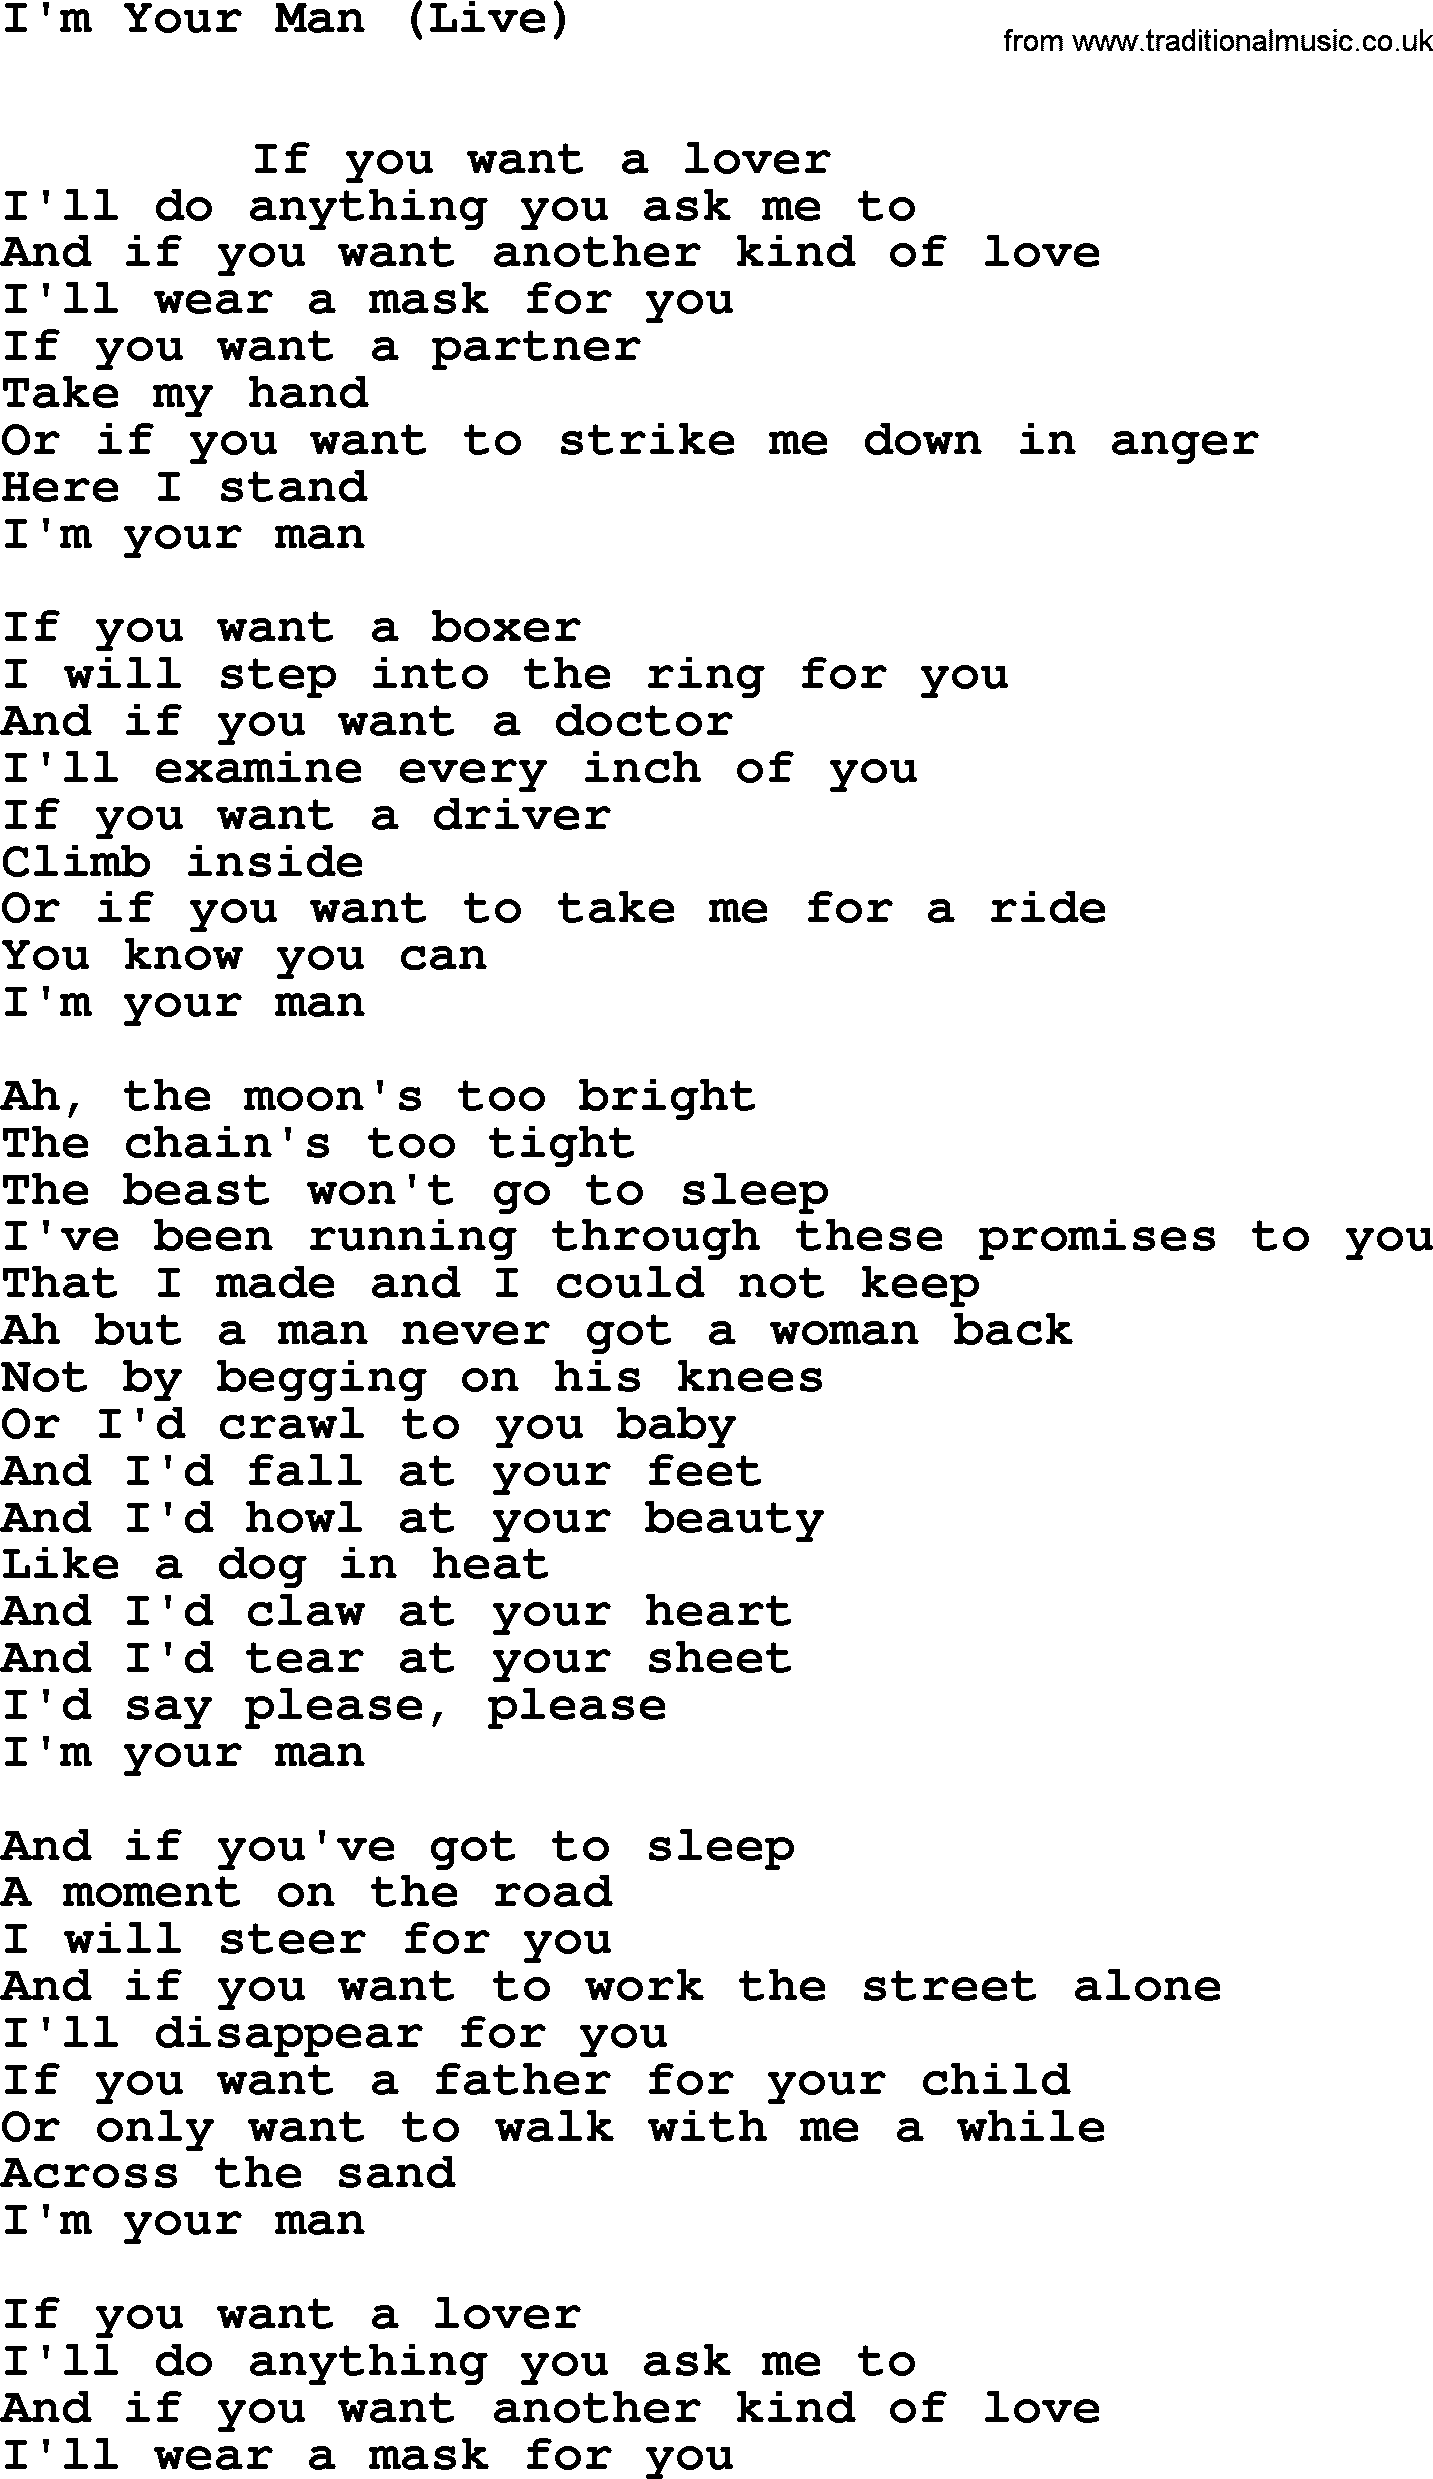 if you want a lover lyrics